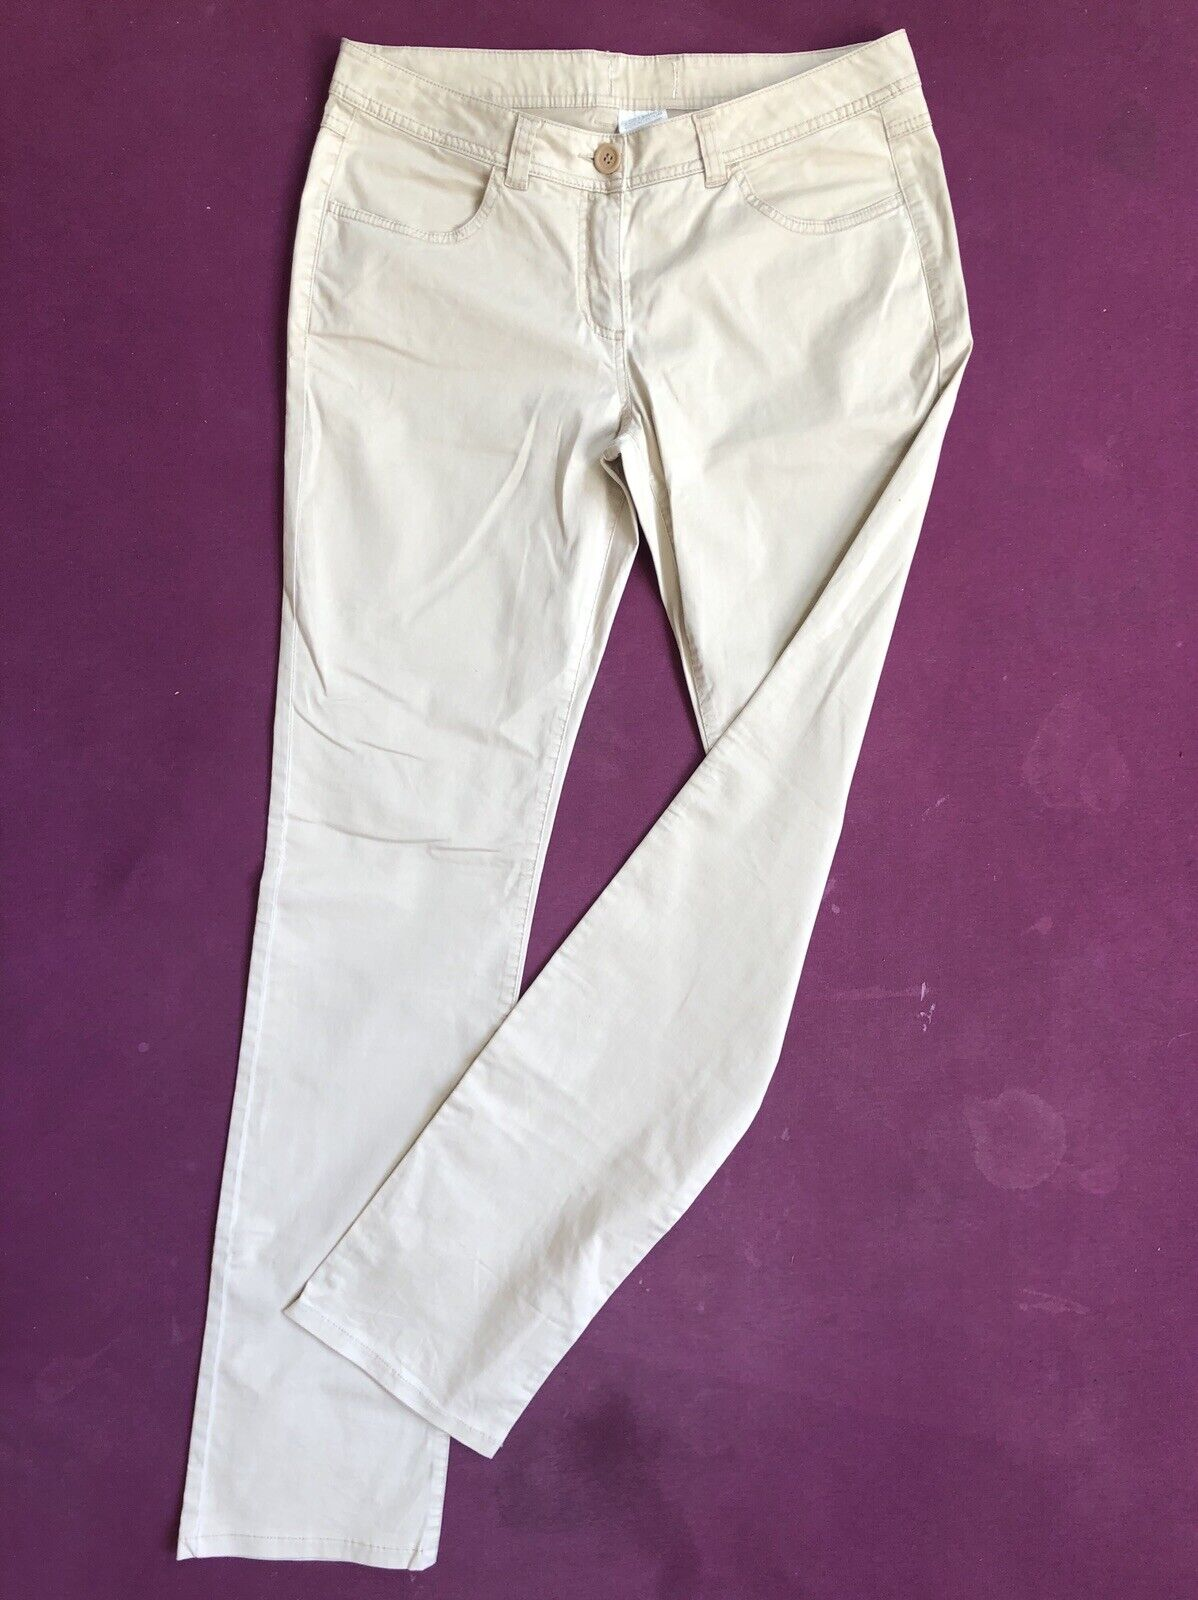 Max & Co by MAX MARA daMänner trousers W26 L32 Größe 34 L32 Low Waist Regular Fit Straight